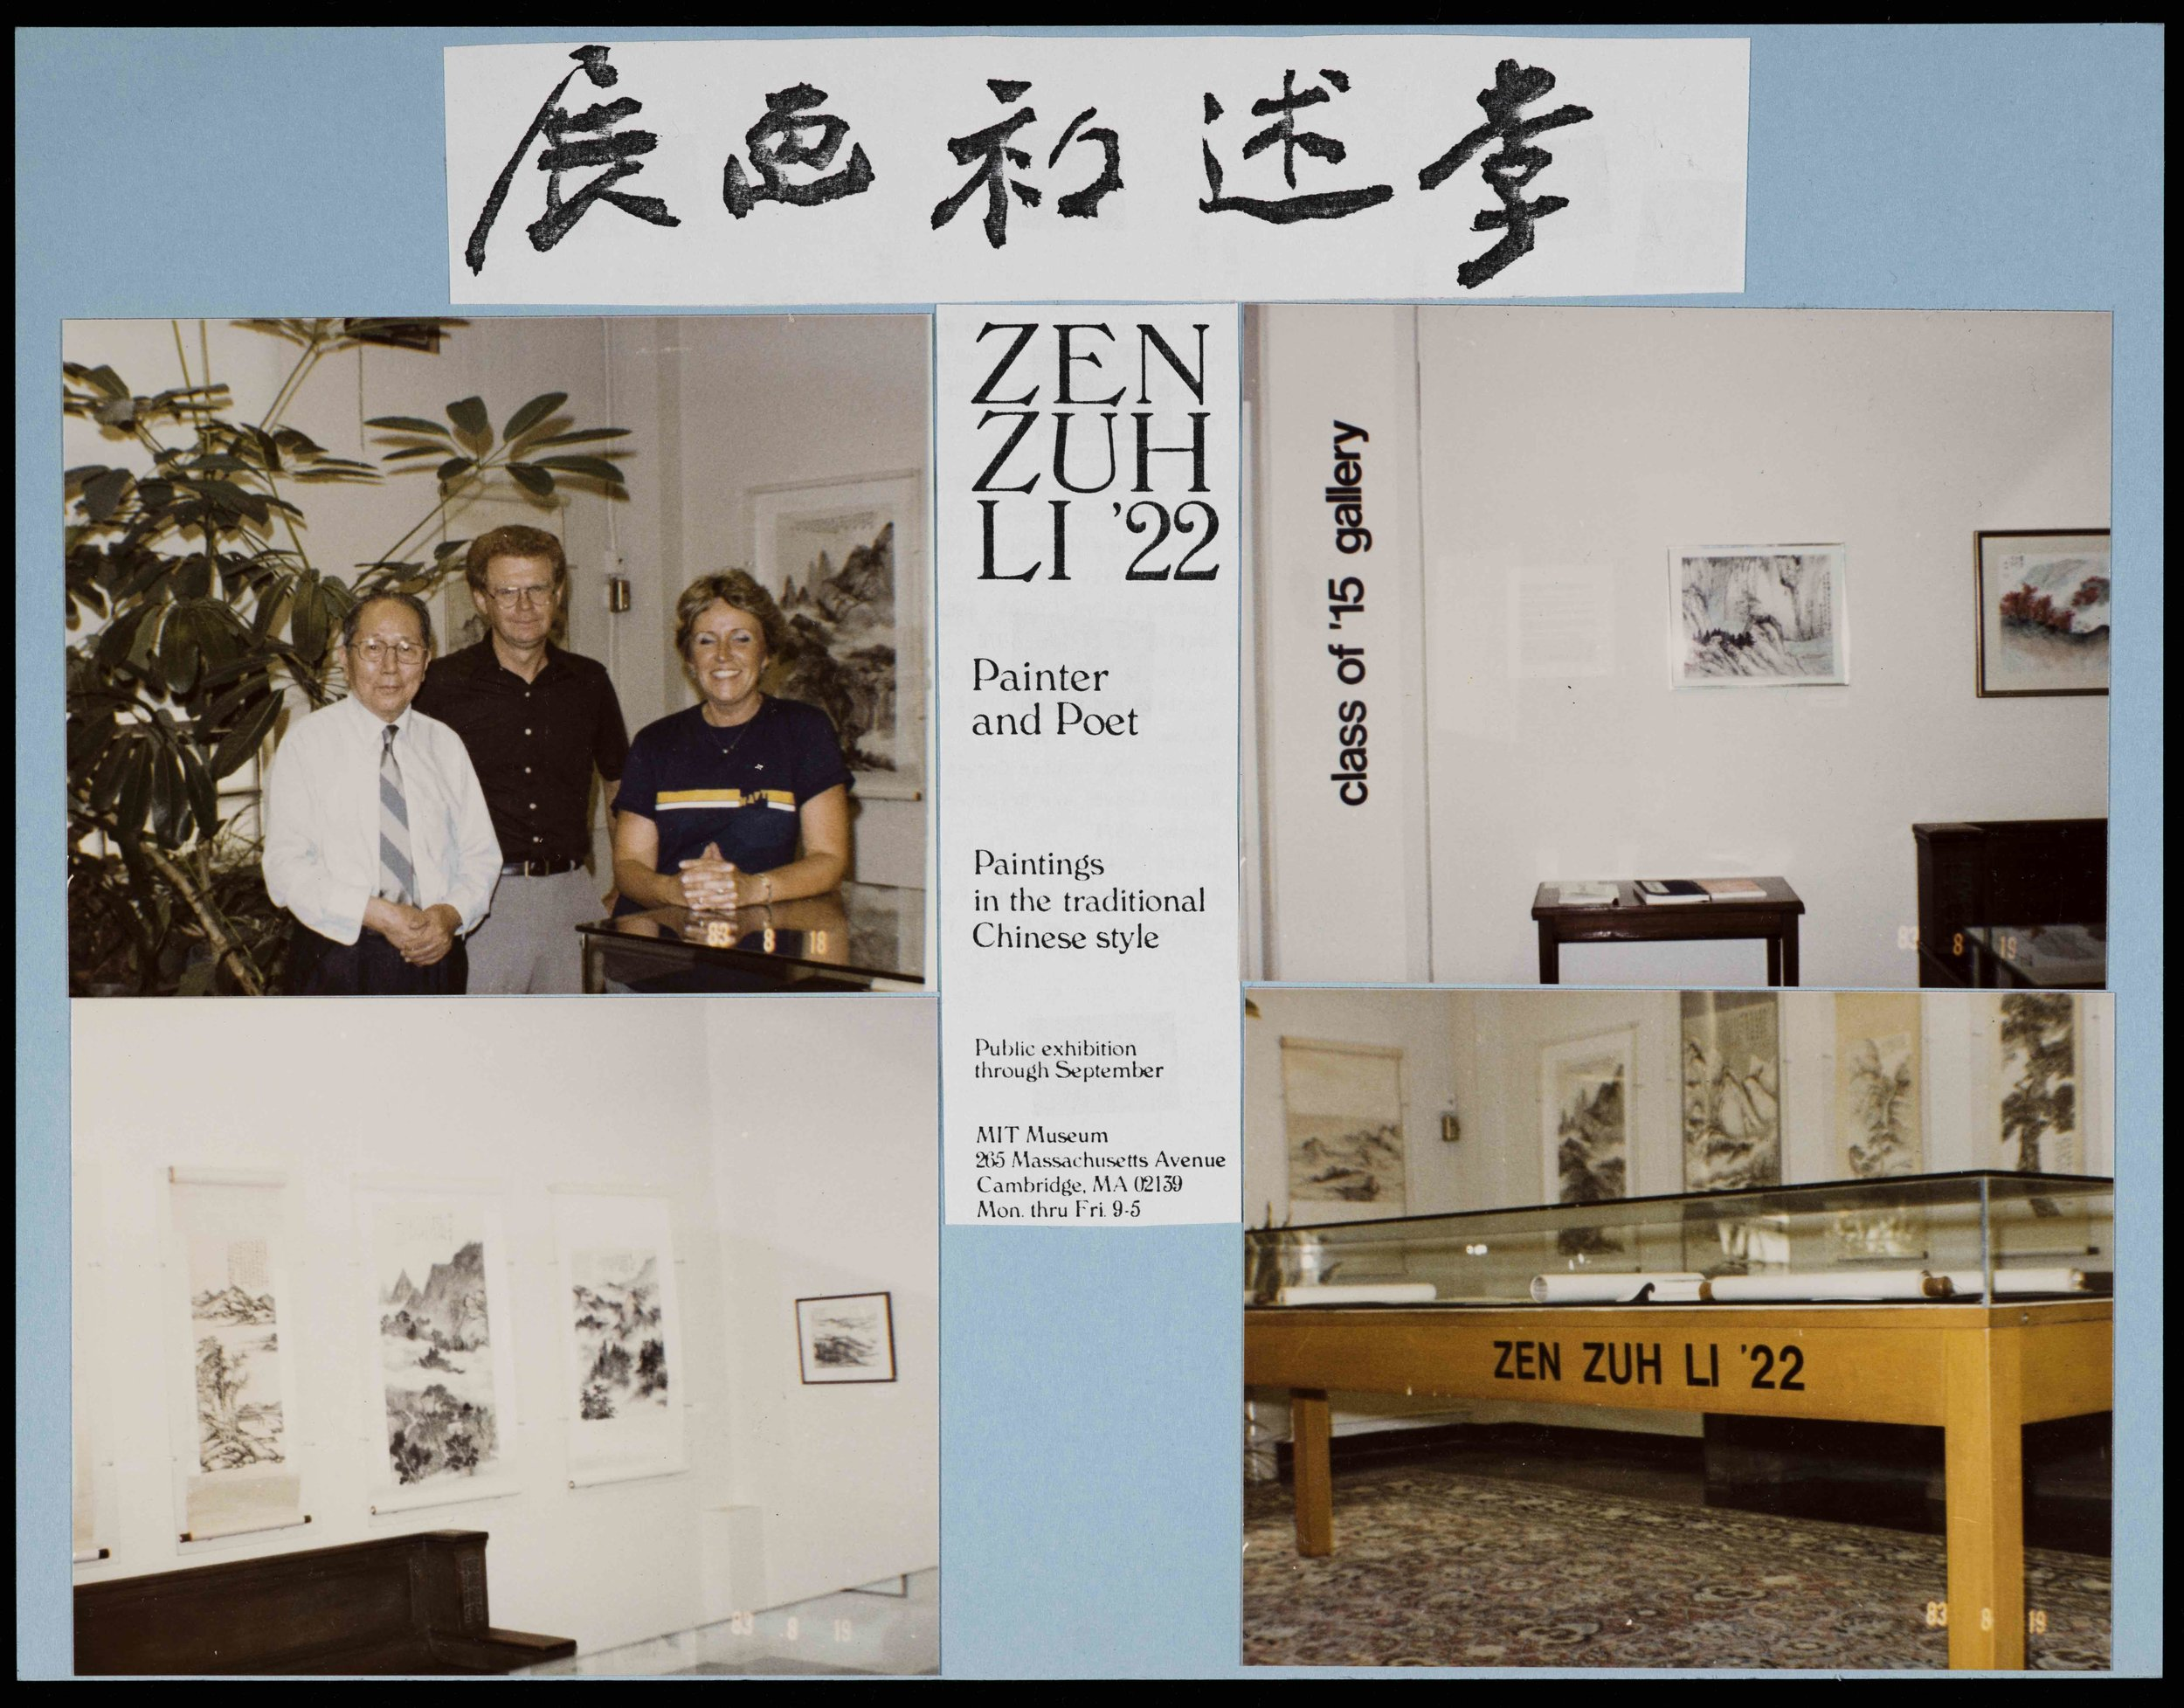 """Zen Zuh Li '22: Painter and Poet,"" exhibit at the MIT Museum, 1983. Image courtesy MIT Museum."